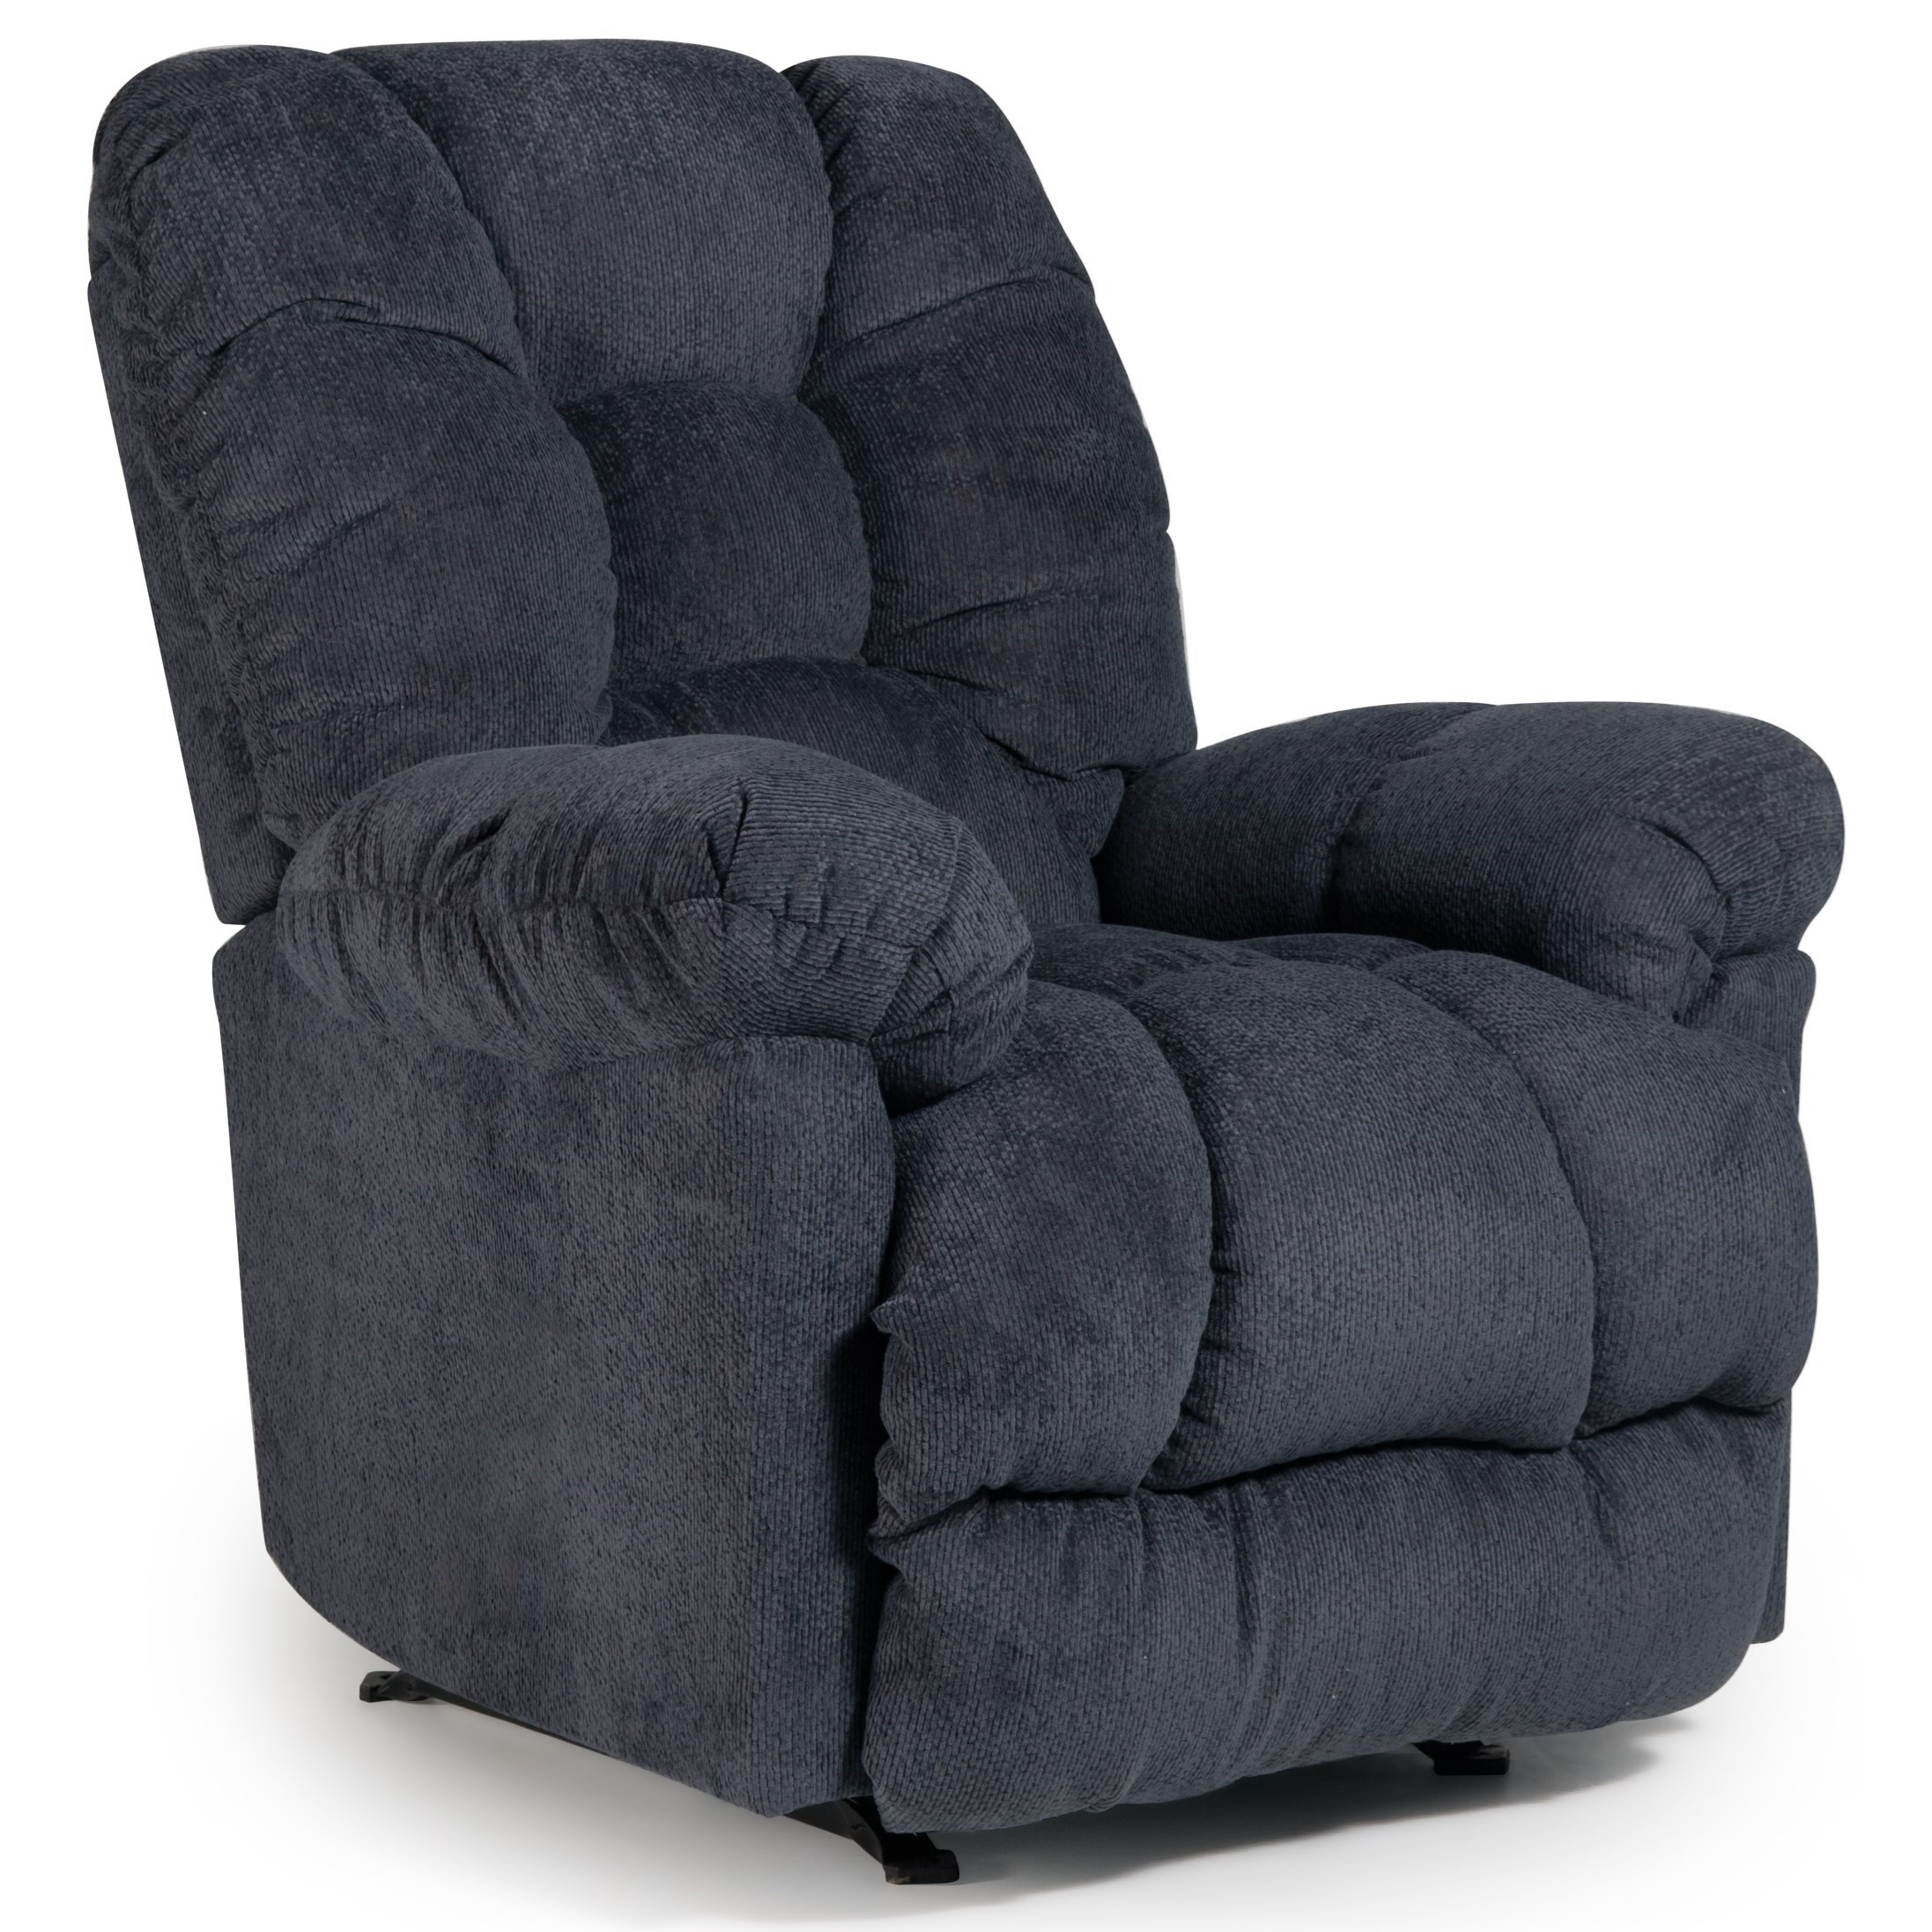 Best Home Furnishings Recliners - Medium Orlando Power Space Saver Recliner - Item Number: 6NP44